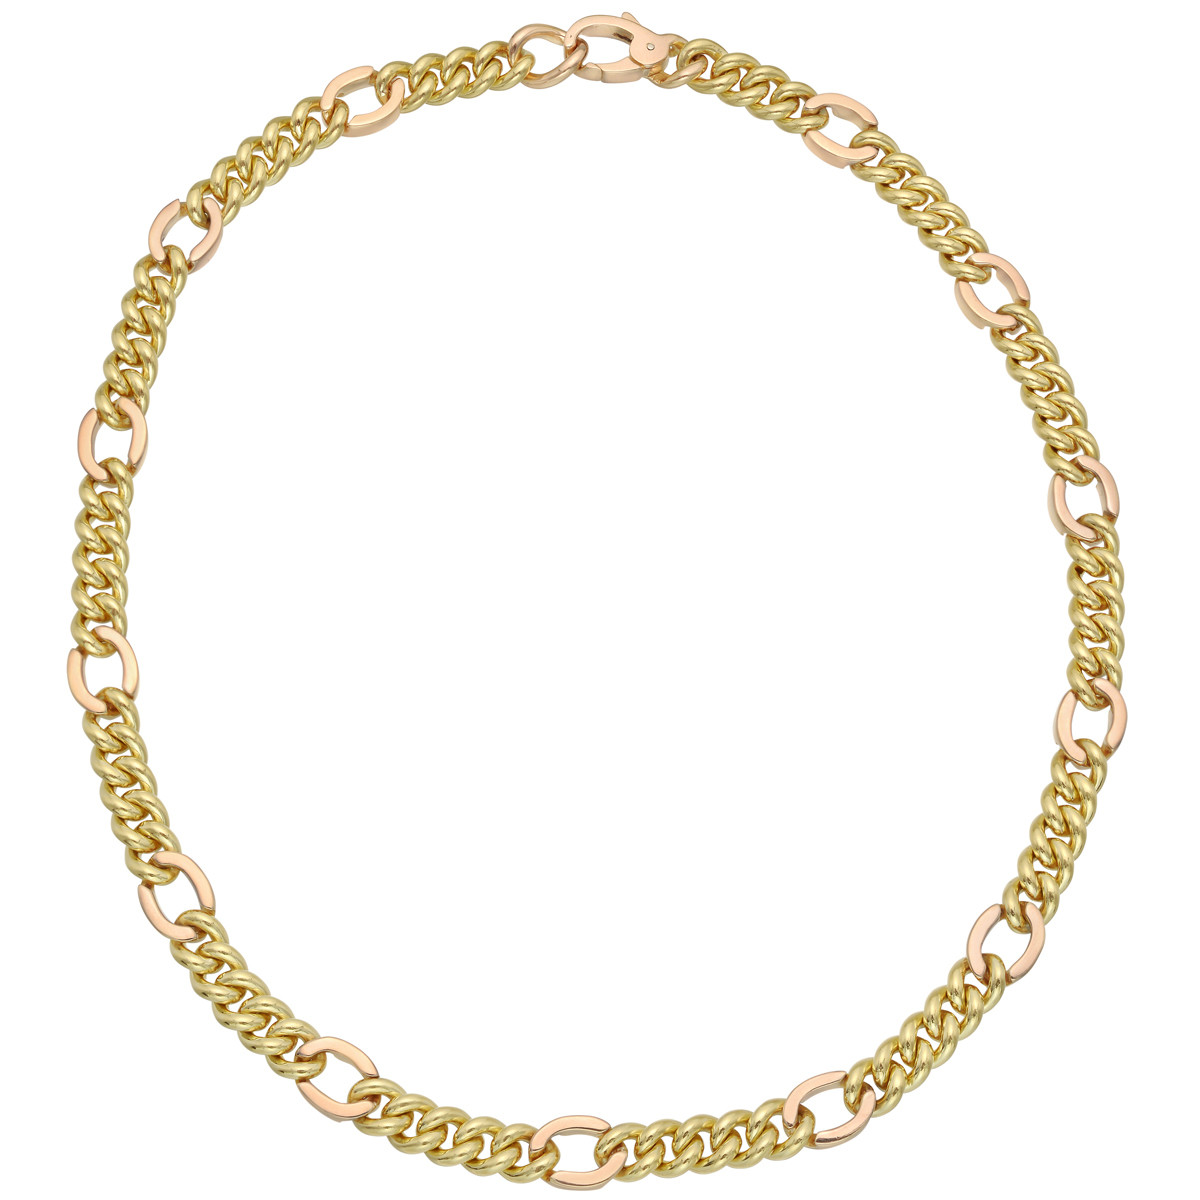 18k Yellow & Rose Gold Curb-Link Chain Necklace